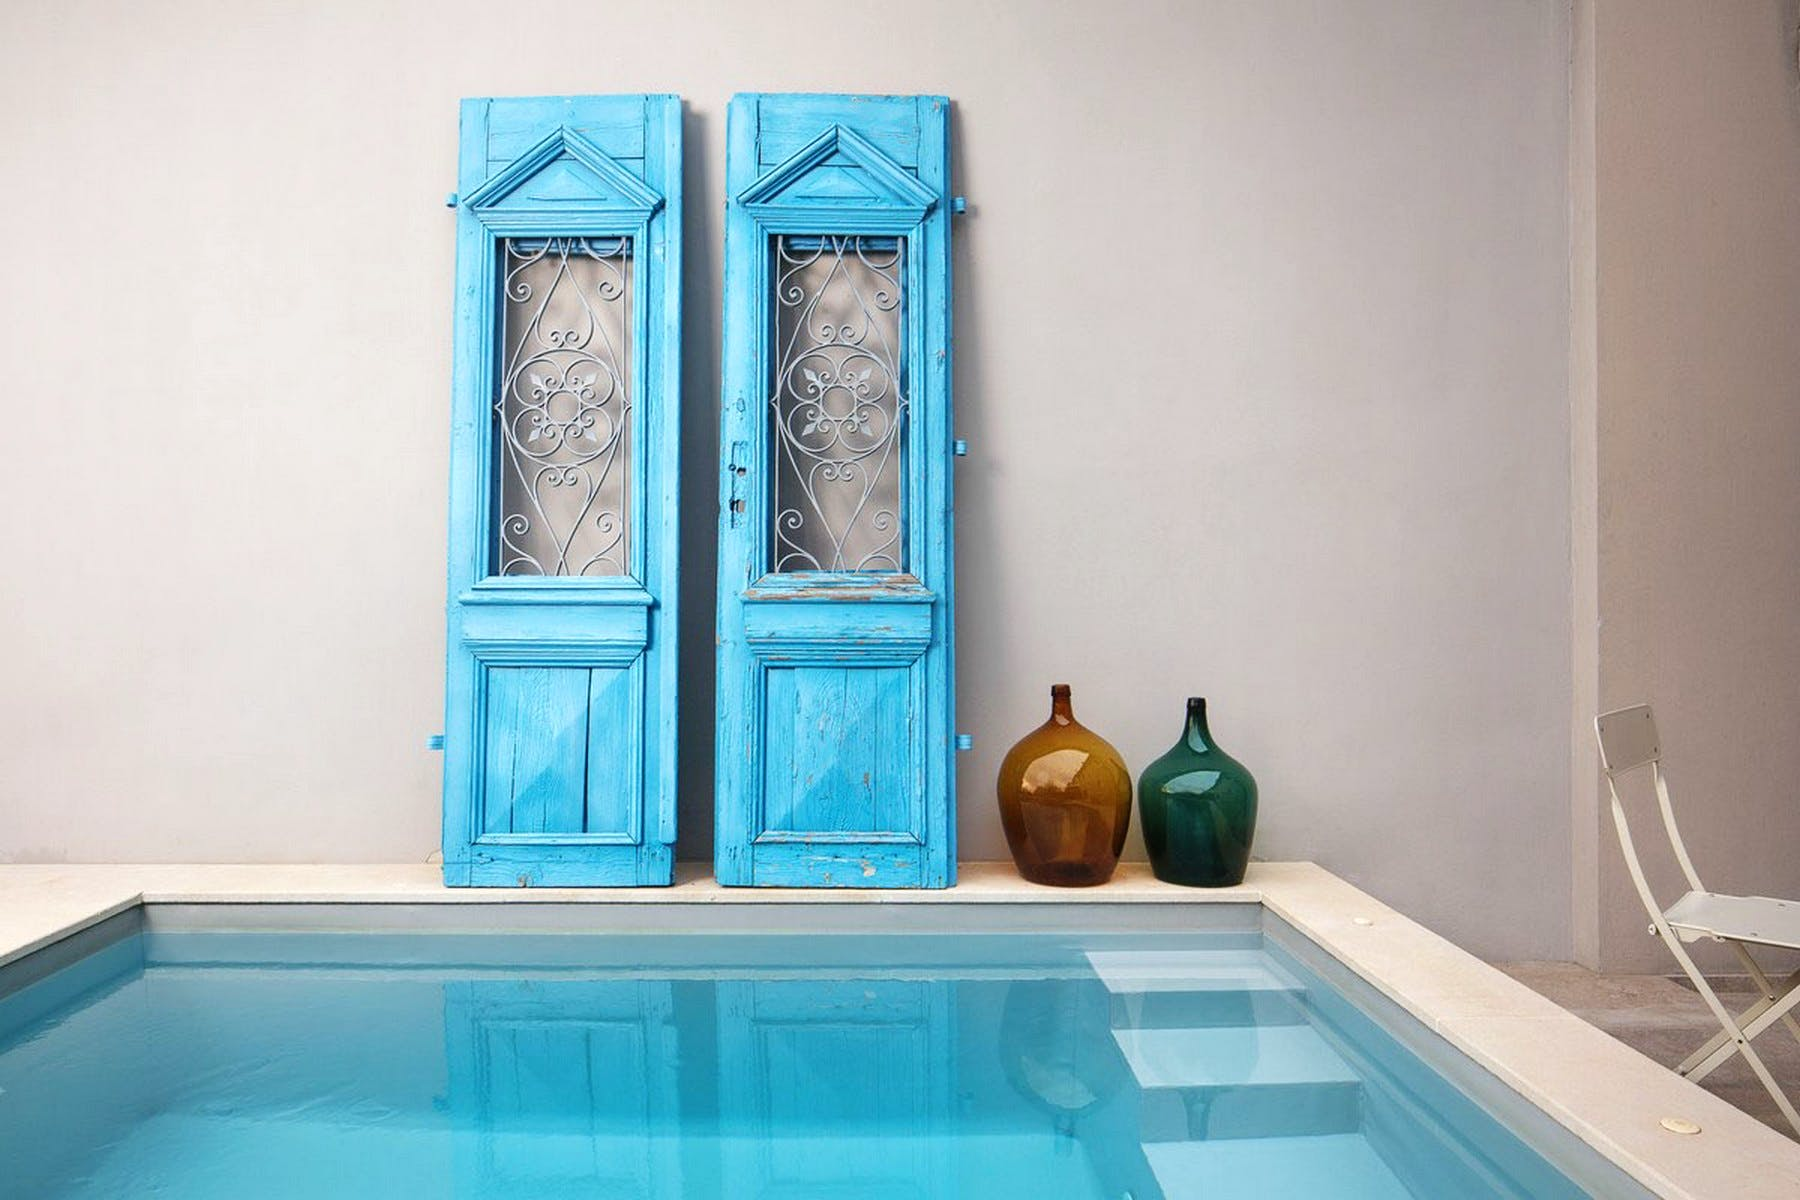 Decor of the pool